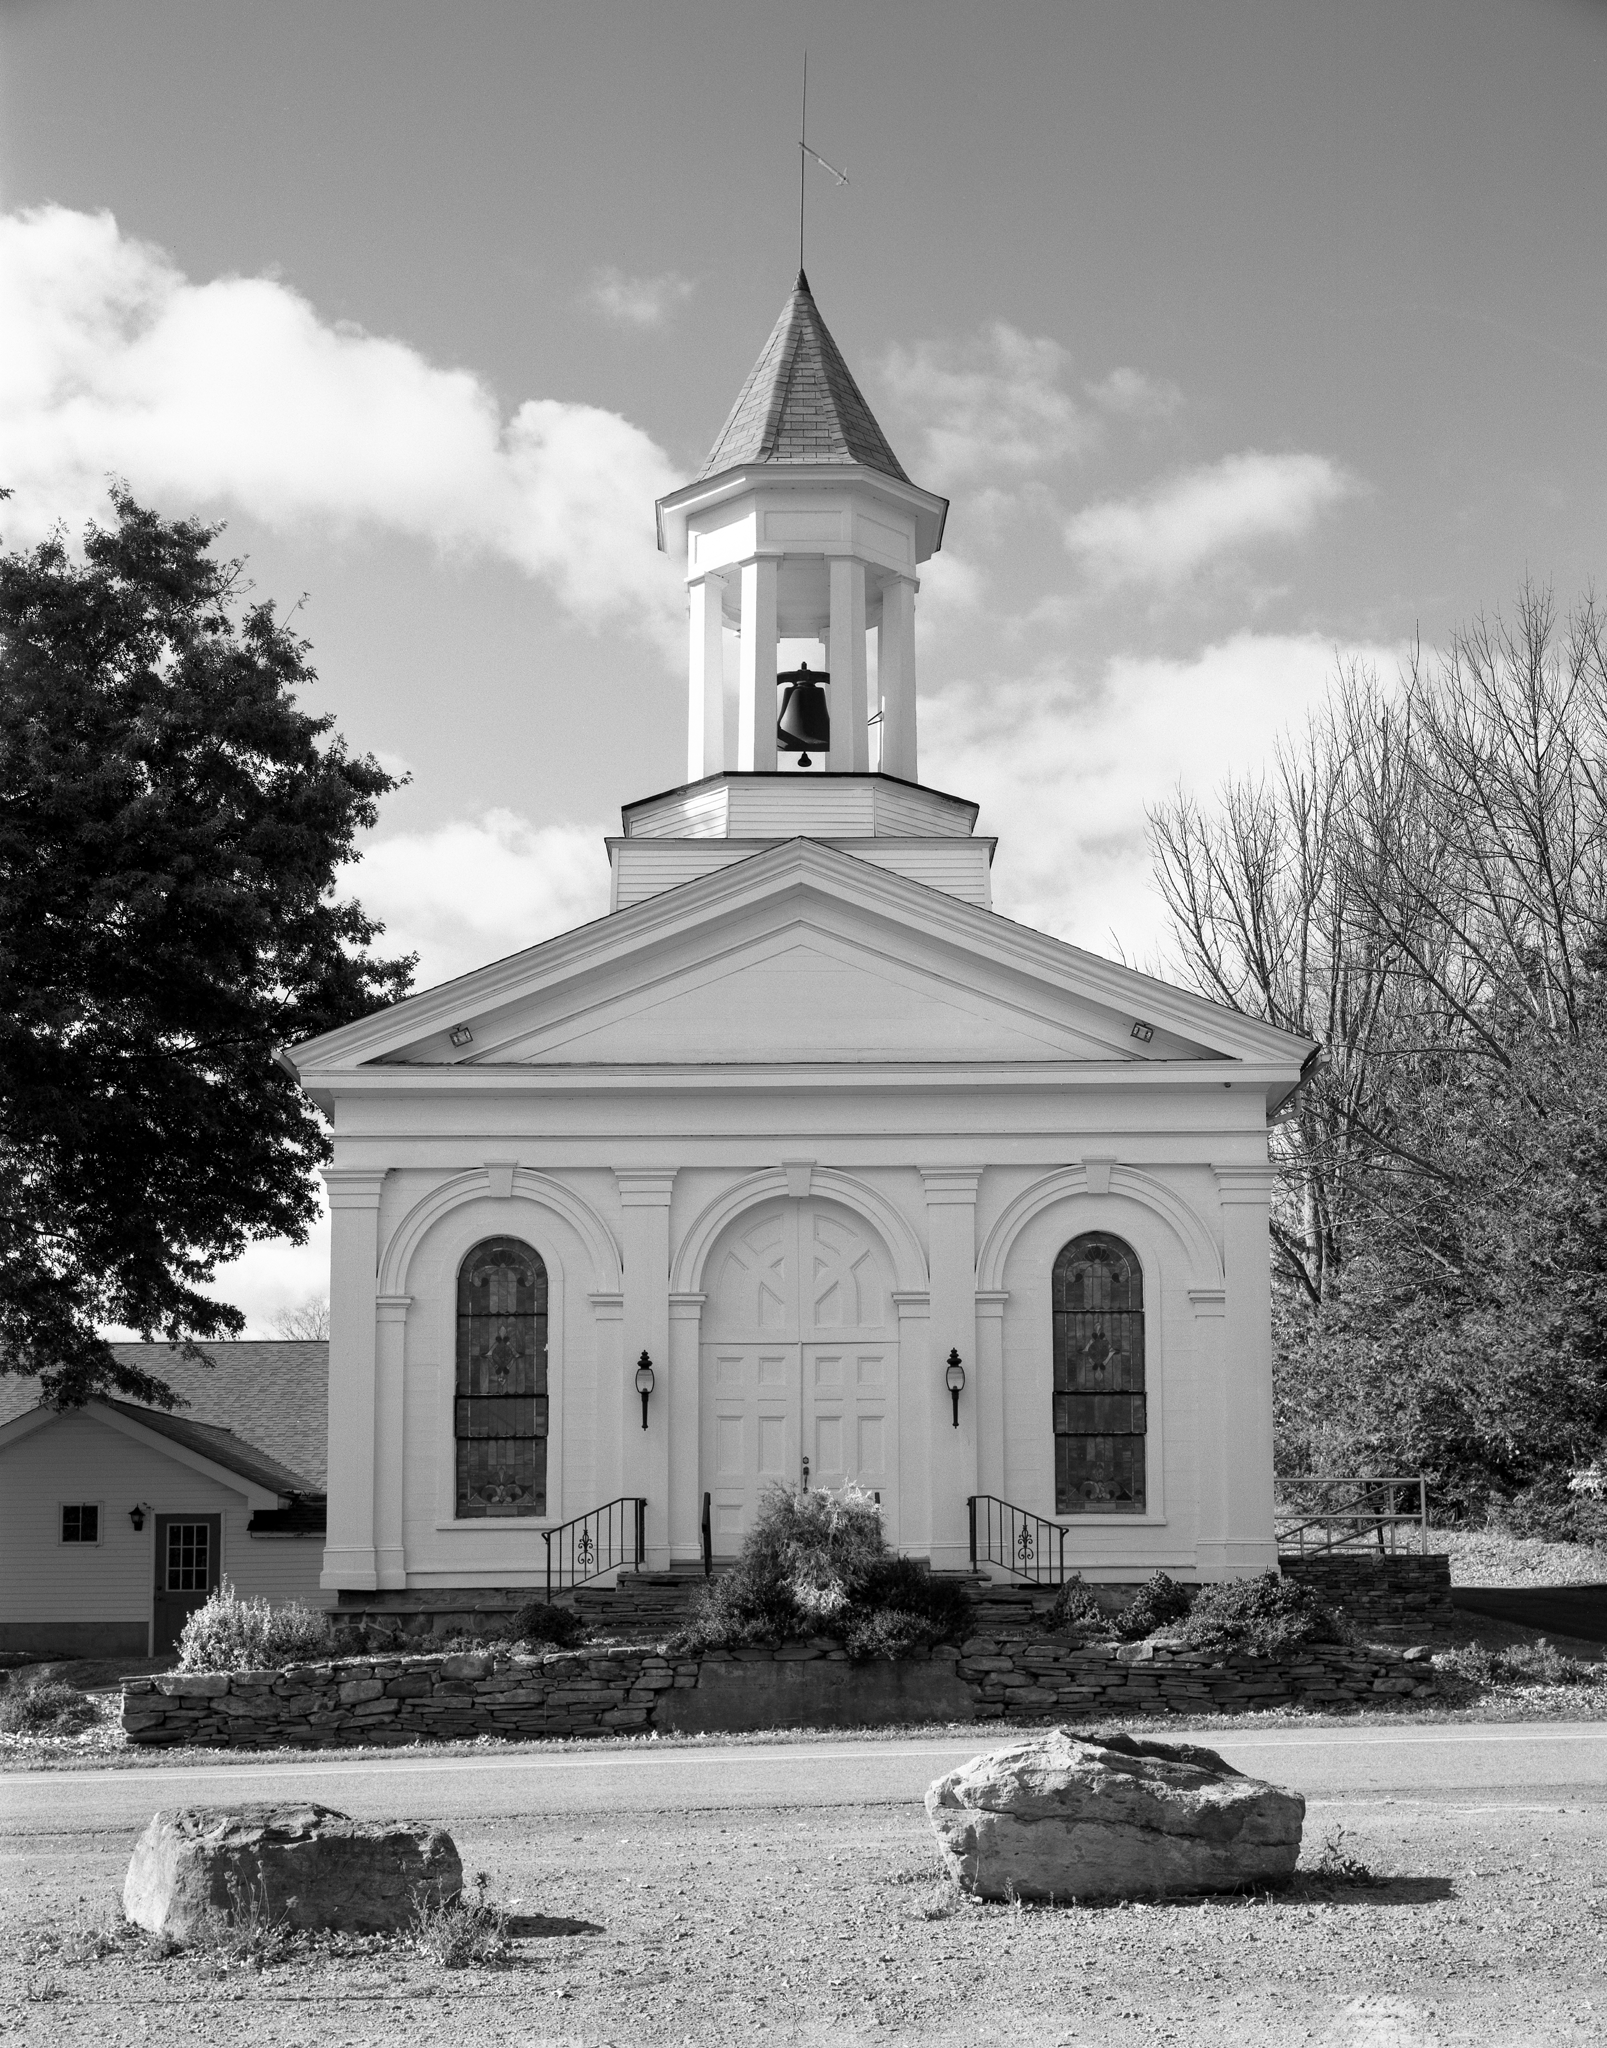 4x5_for_365_project_0281_calkins_baptist_church.png